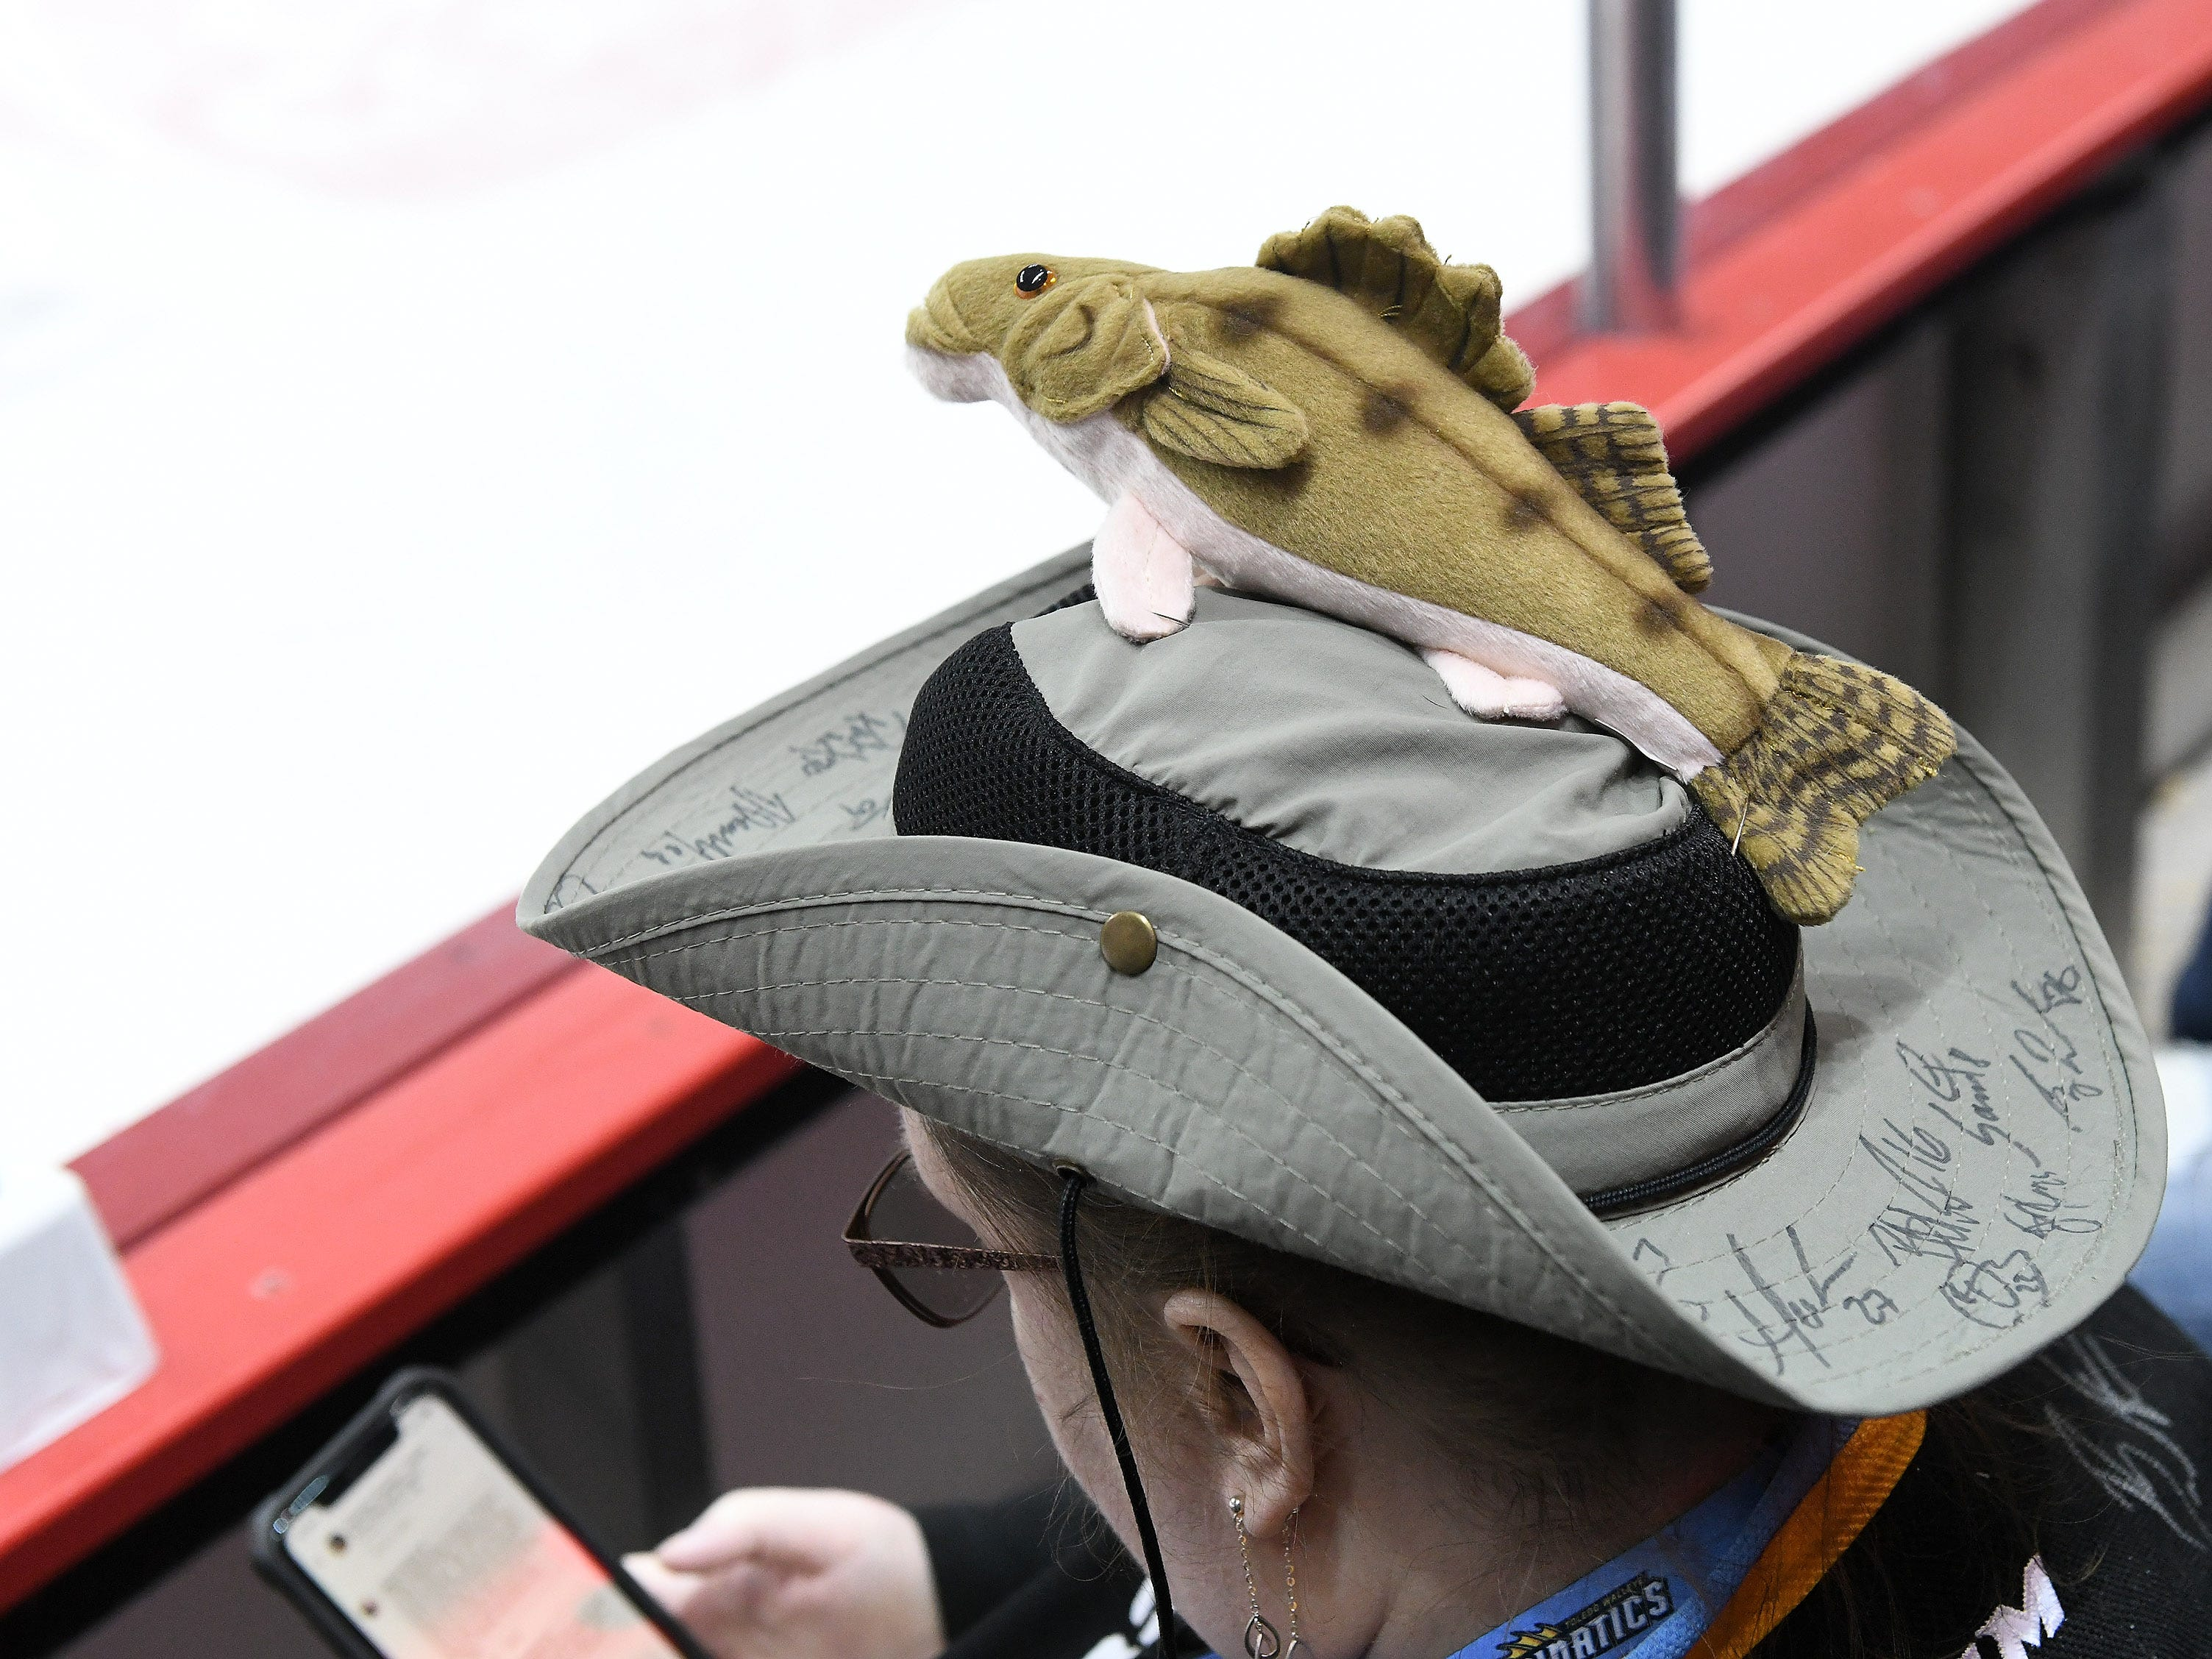 Tammy McInerney of Sylvania checks her phone during the second intermission.  She is wearing a hat that her husband, Michael, customized with a walleye pinned to the top. The hat is also covered with many player signatures.